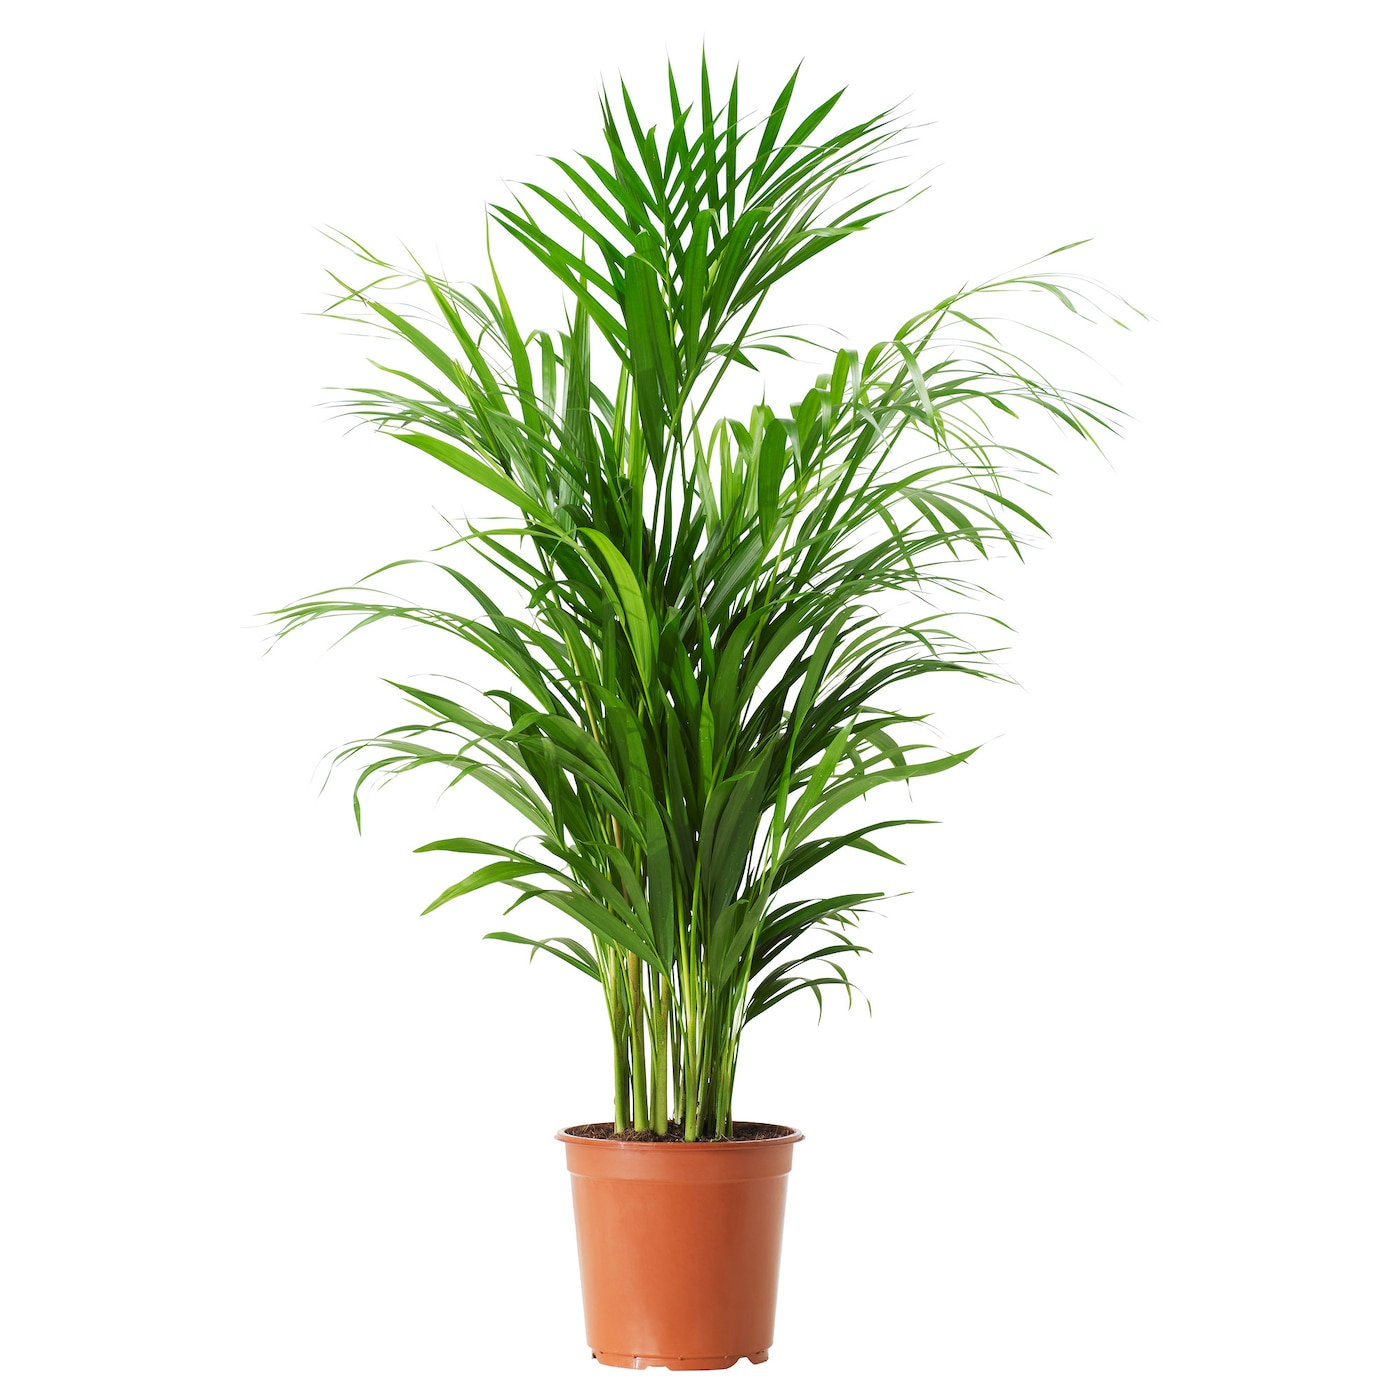 chrysalidocarpus lutescens potted plant areca palm 21 cm. Black Bedroom Furniture Sets. Home Design Ideas